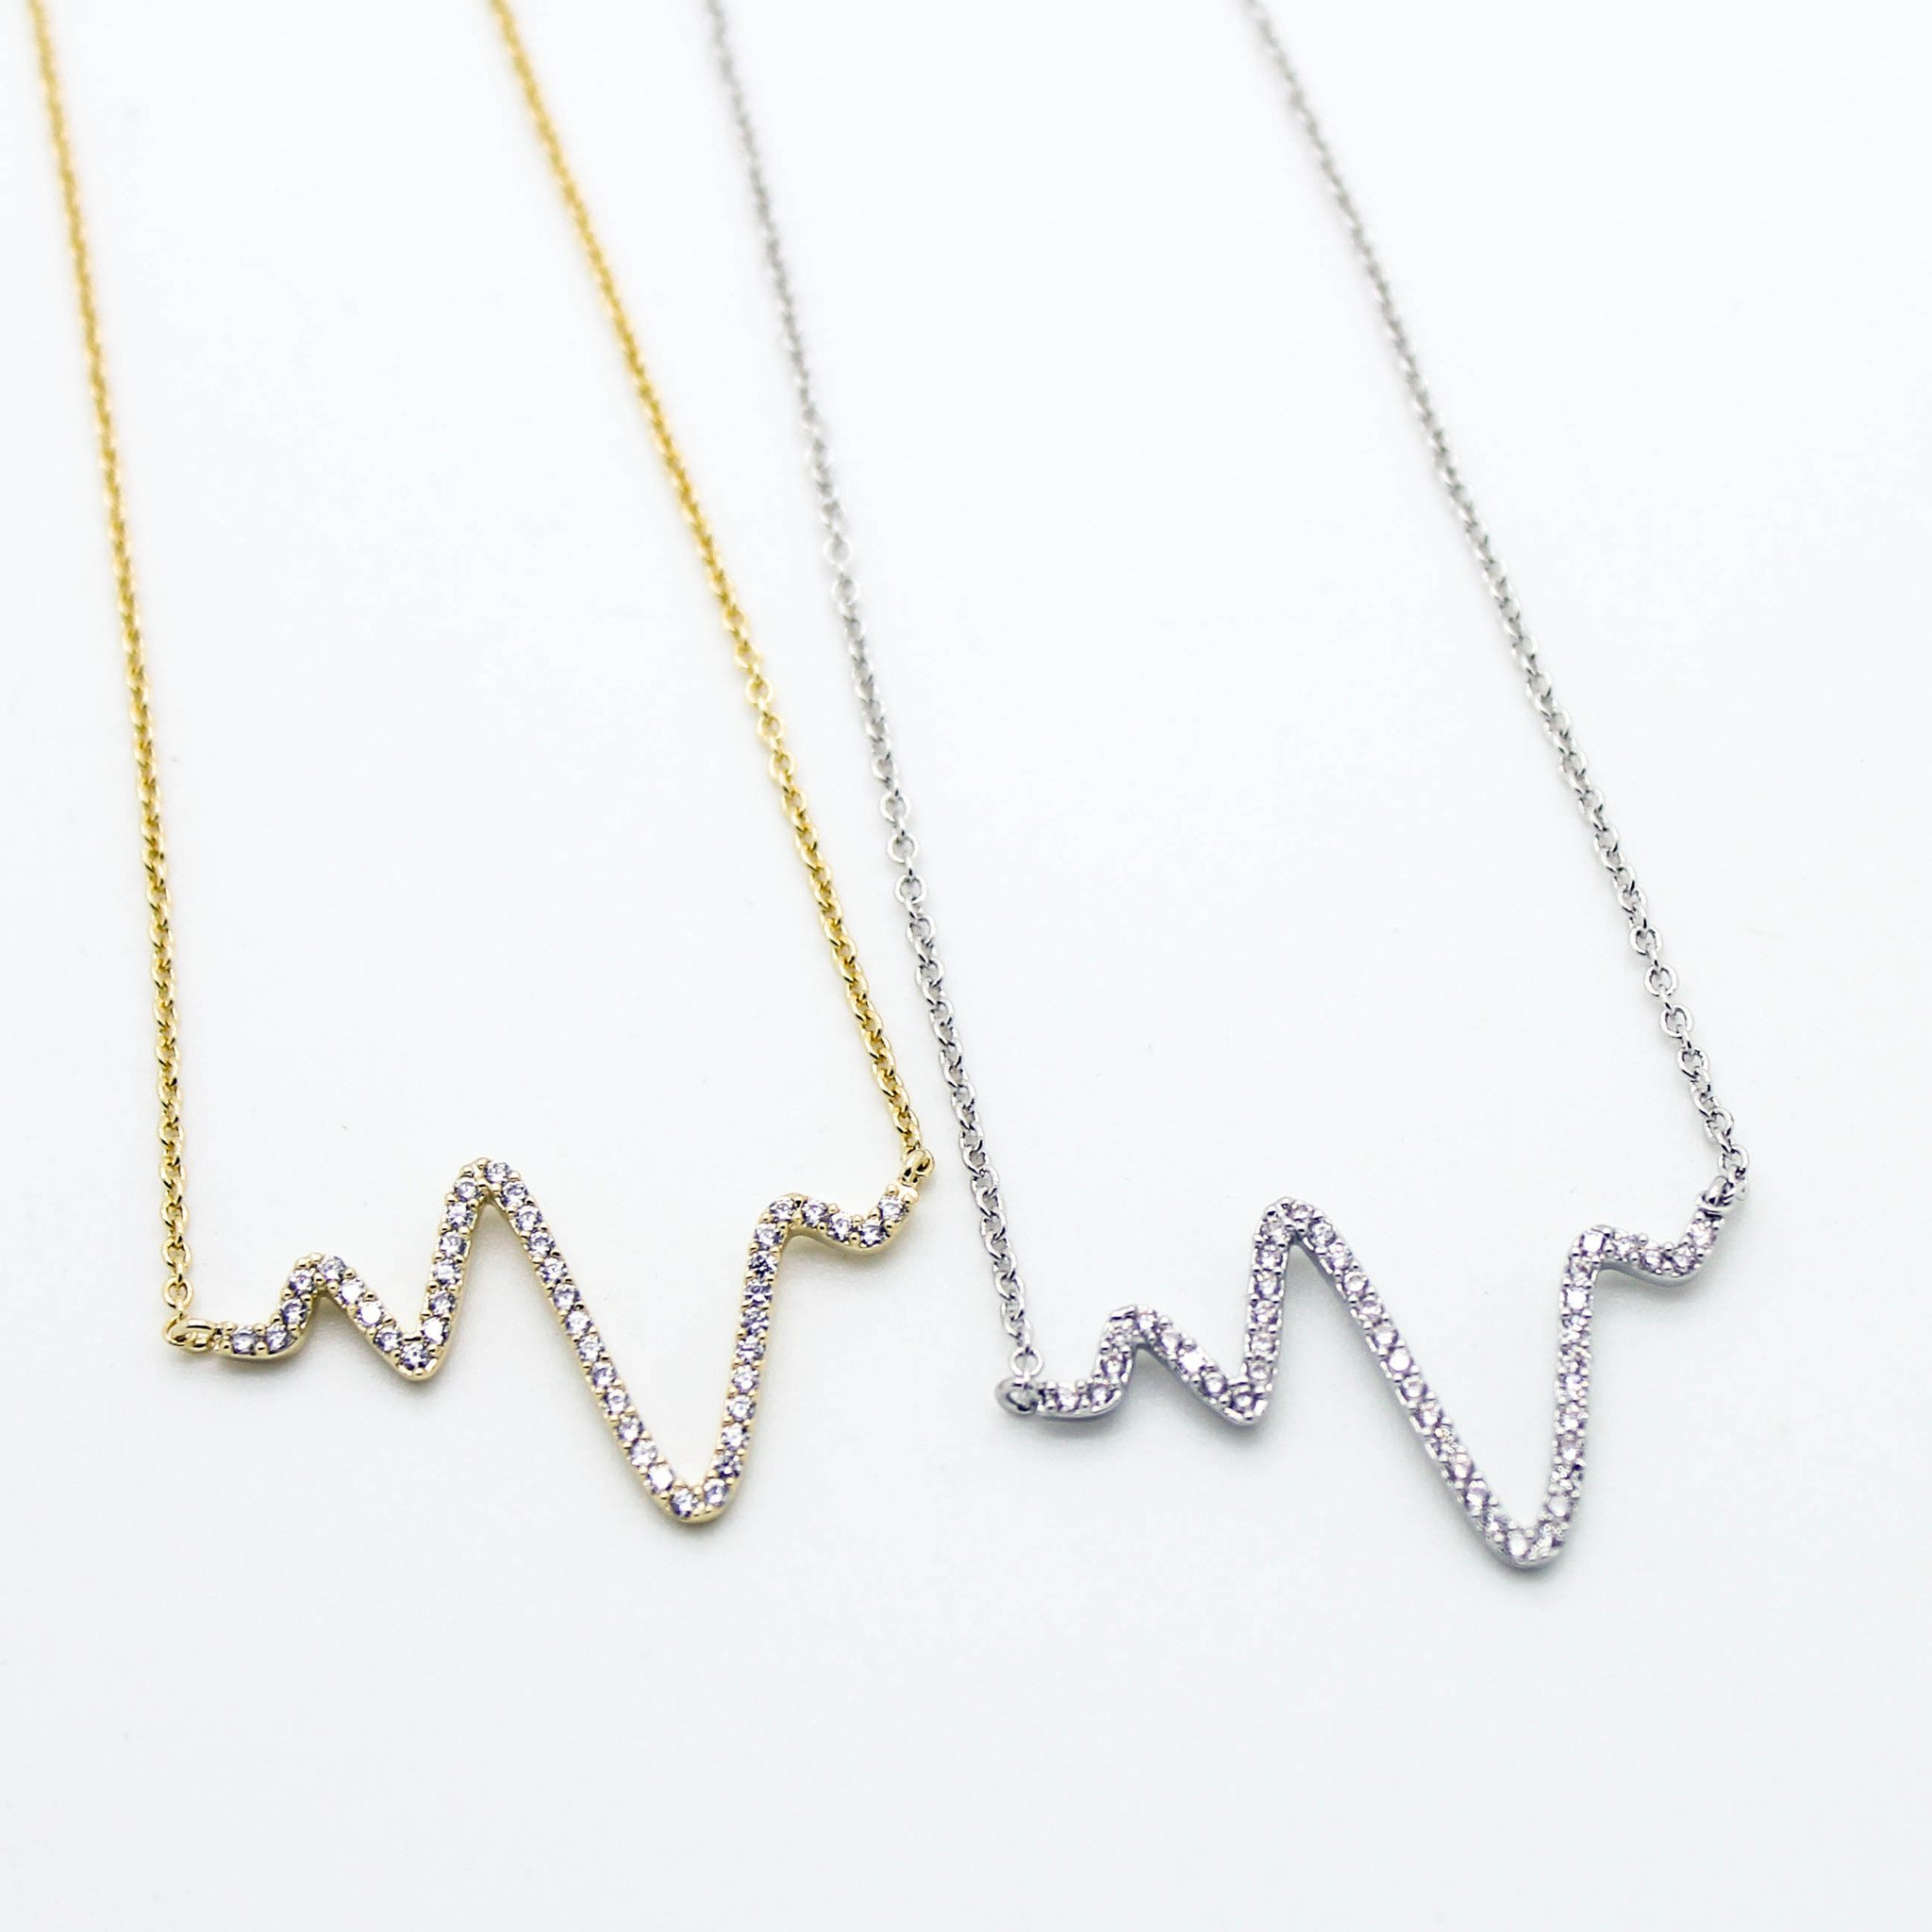 Image of Heart beat wave necklace